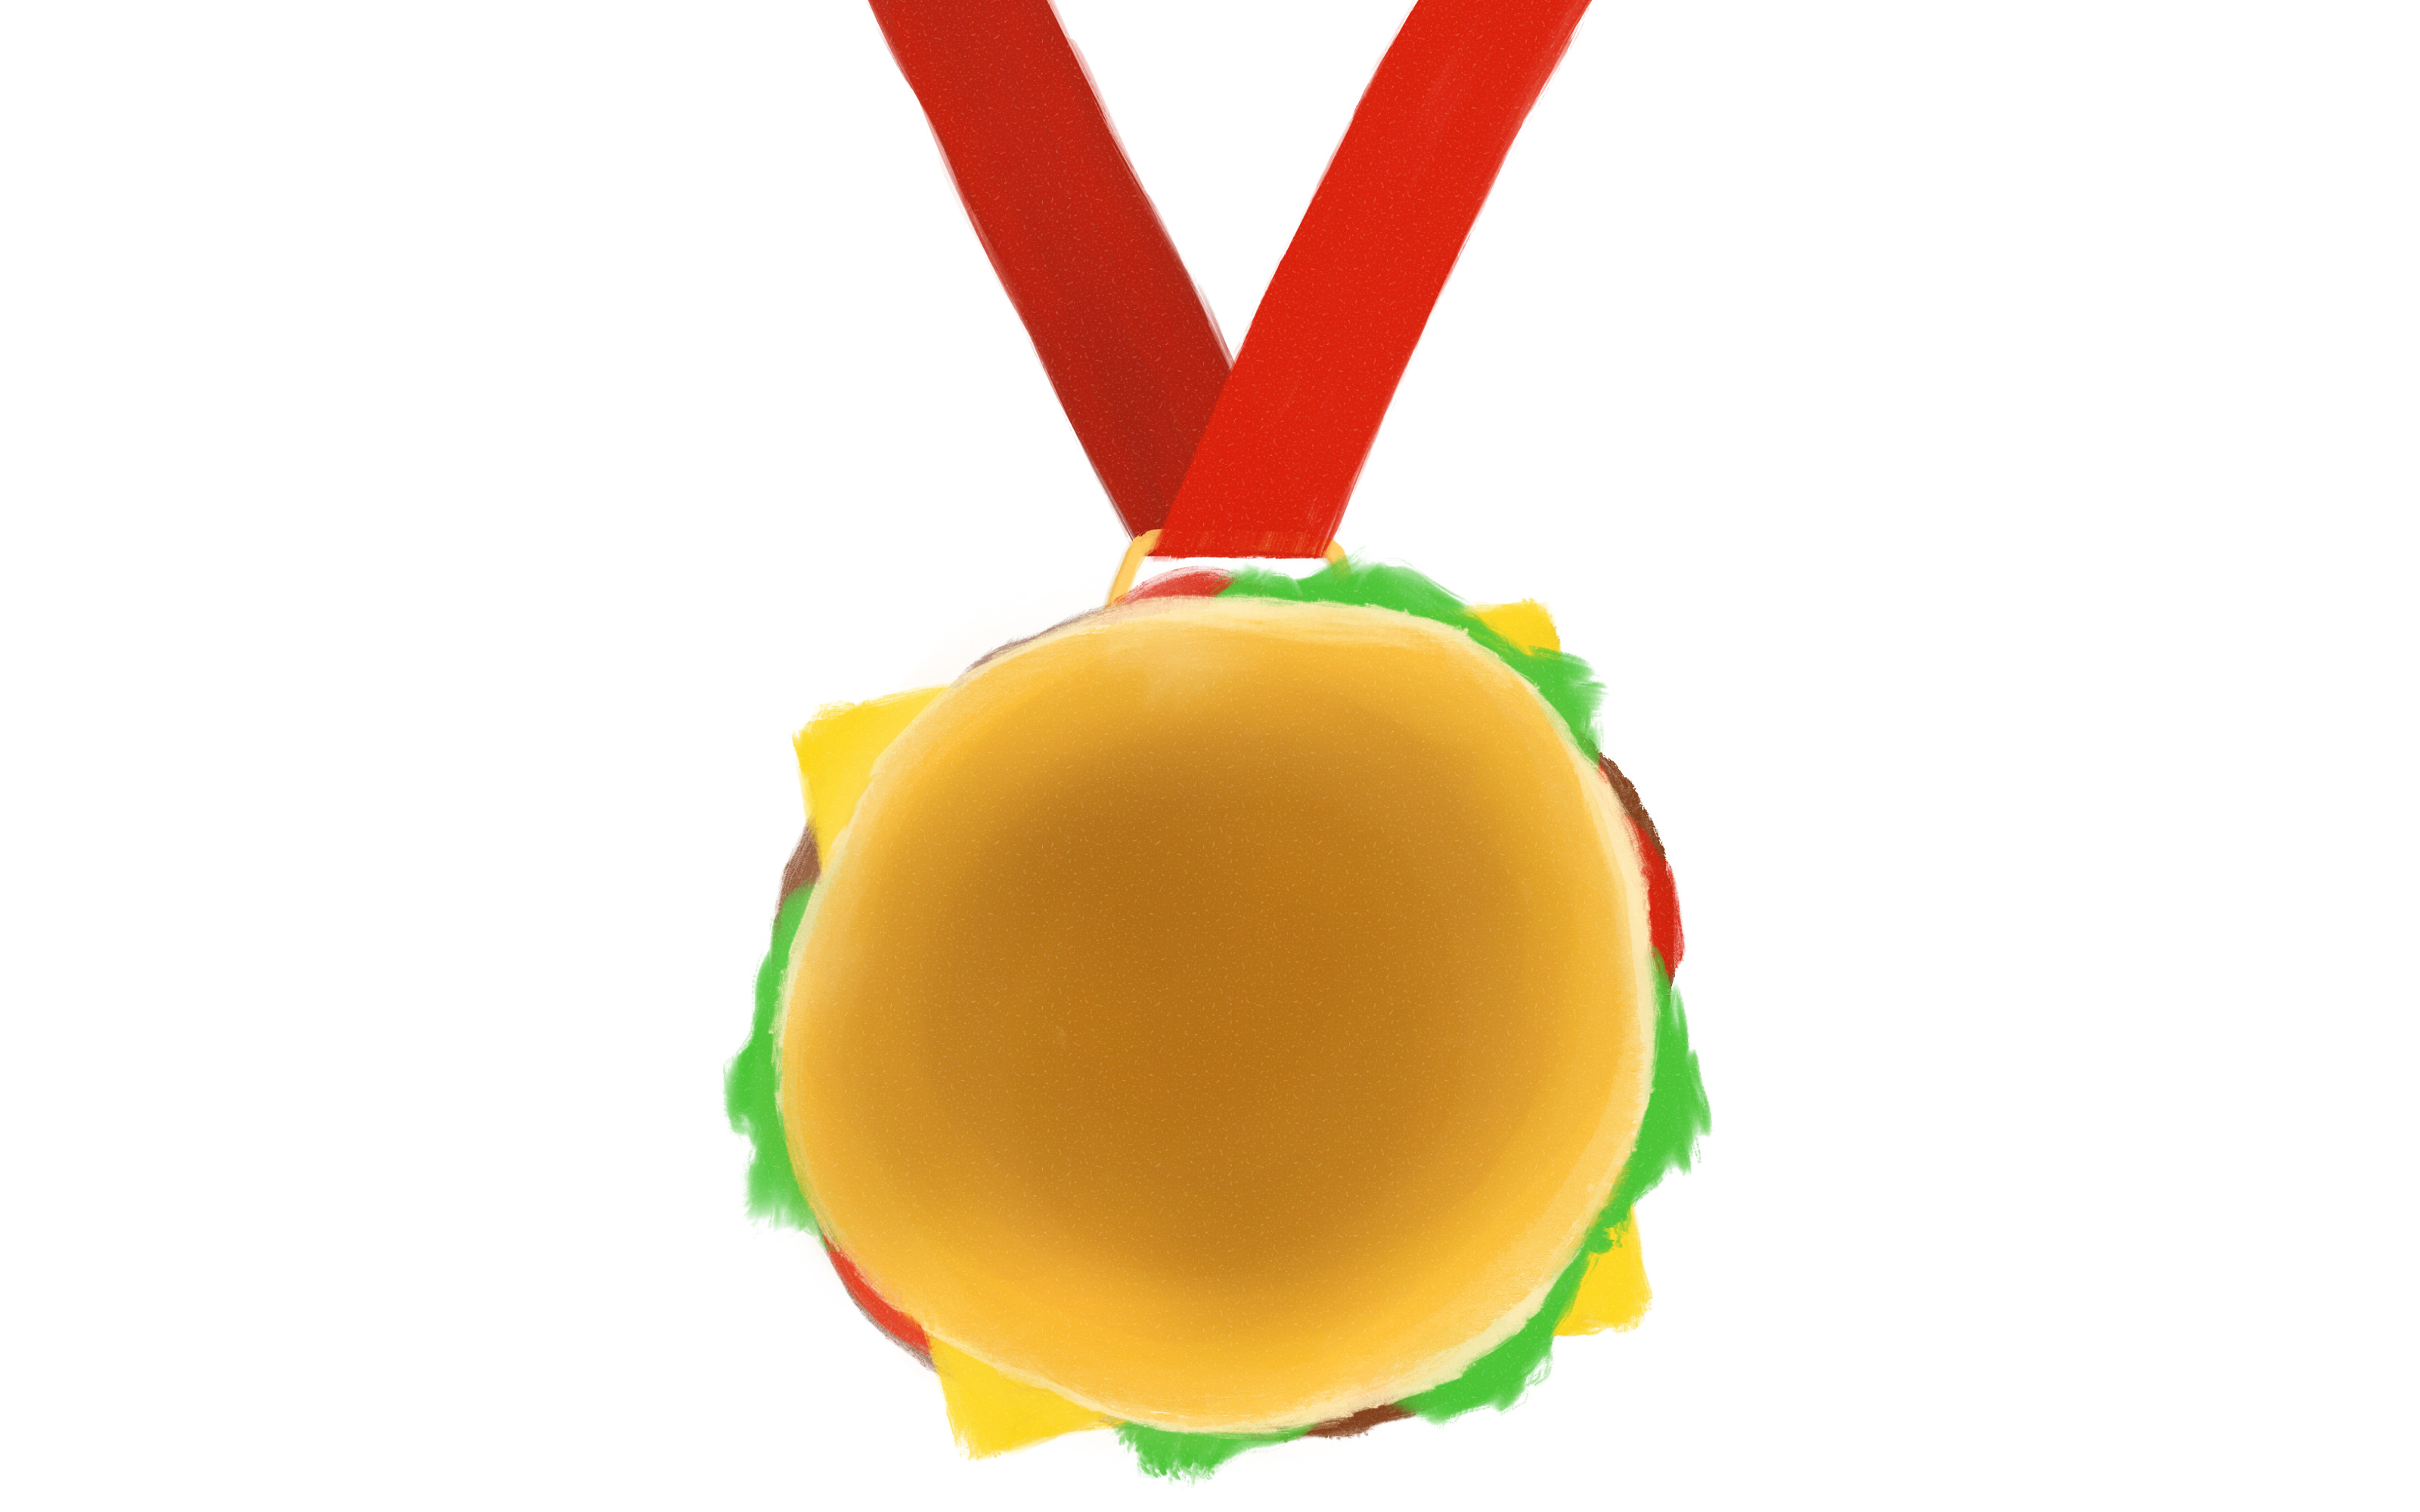 Illustration of a McDonald's cheeseburger mounted to a ribbon, like a medal